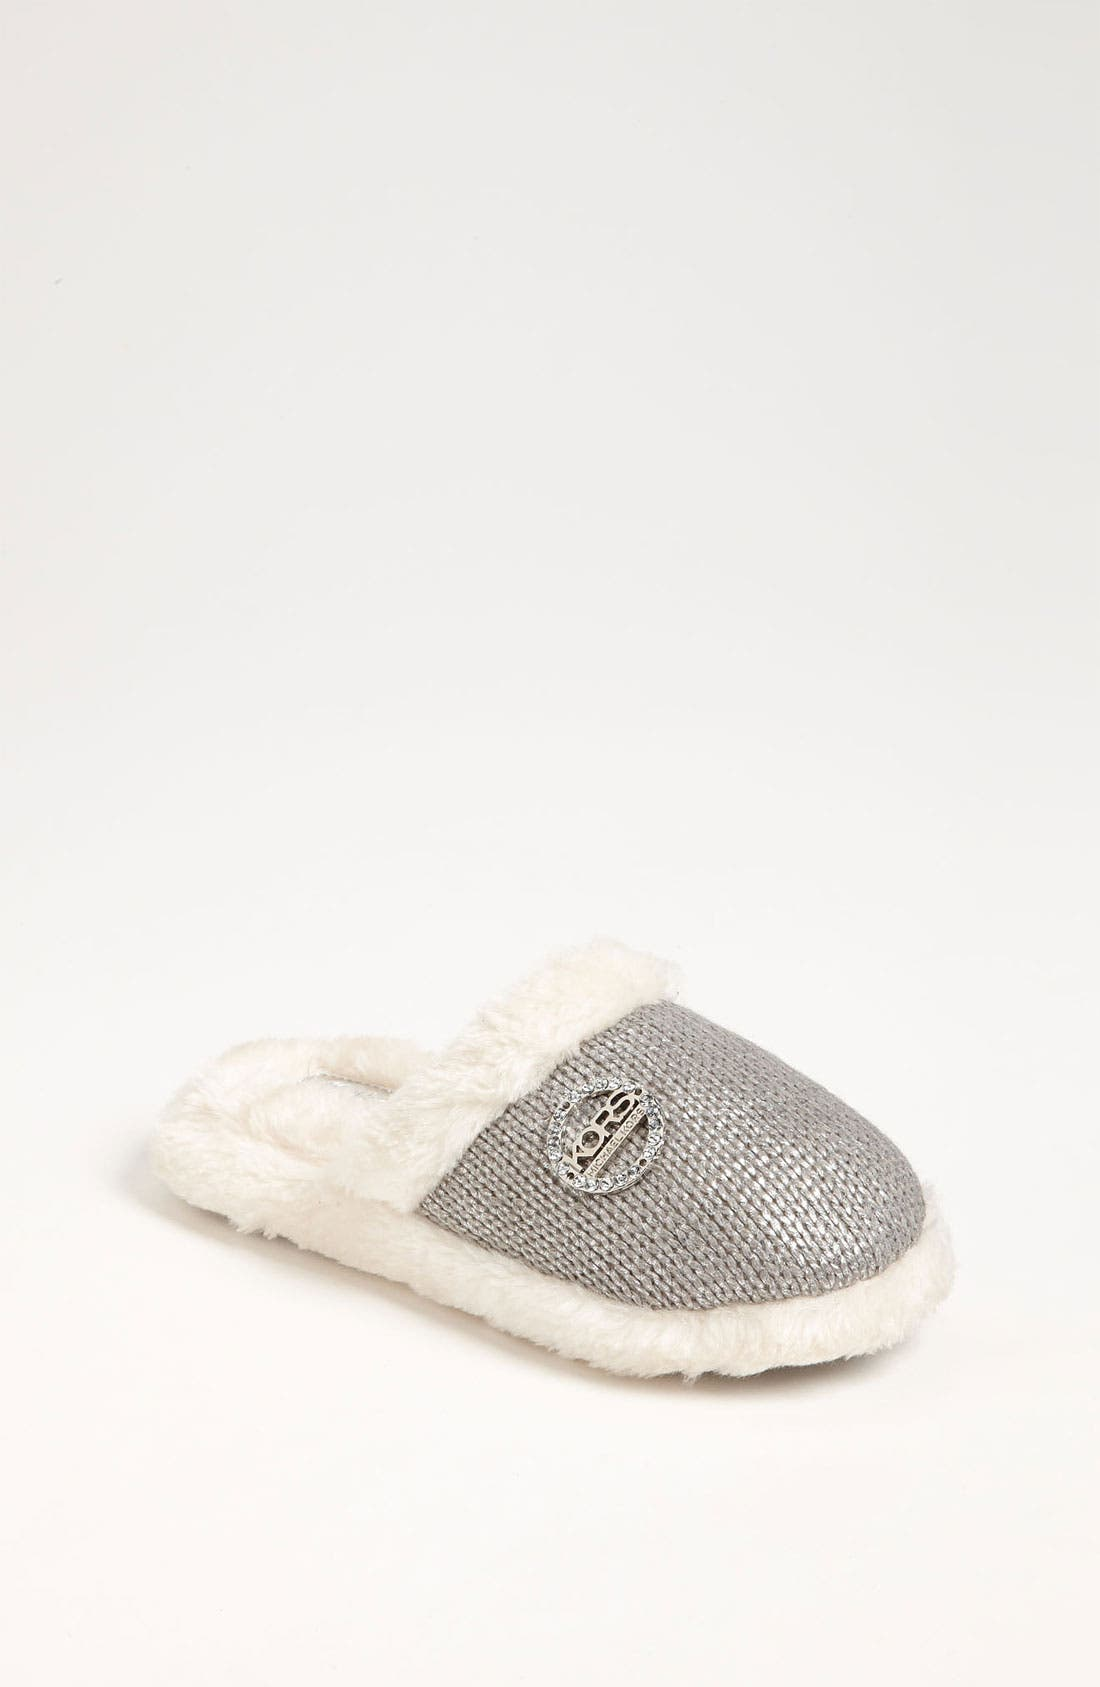 Main Image - KORS Michael Kors 'Shiloah' Slipper with Faux Fur Lining (Toddler, Little Kid & Big Kid)